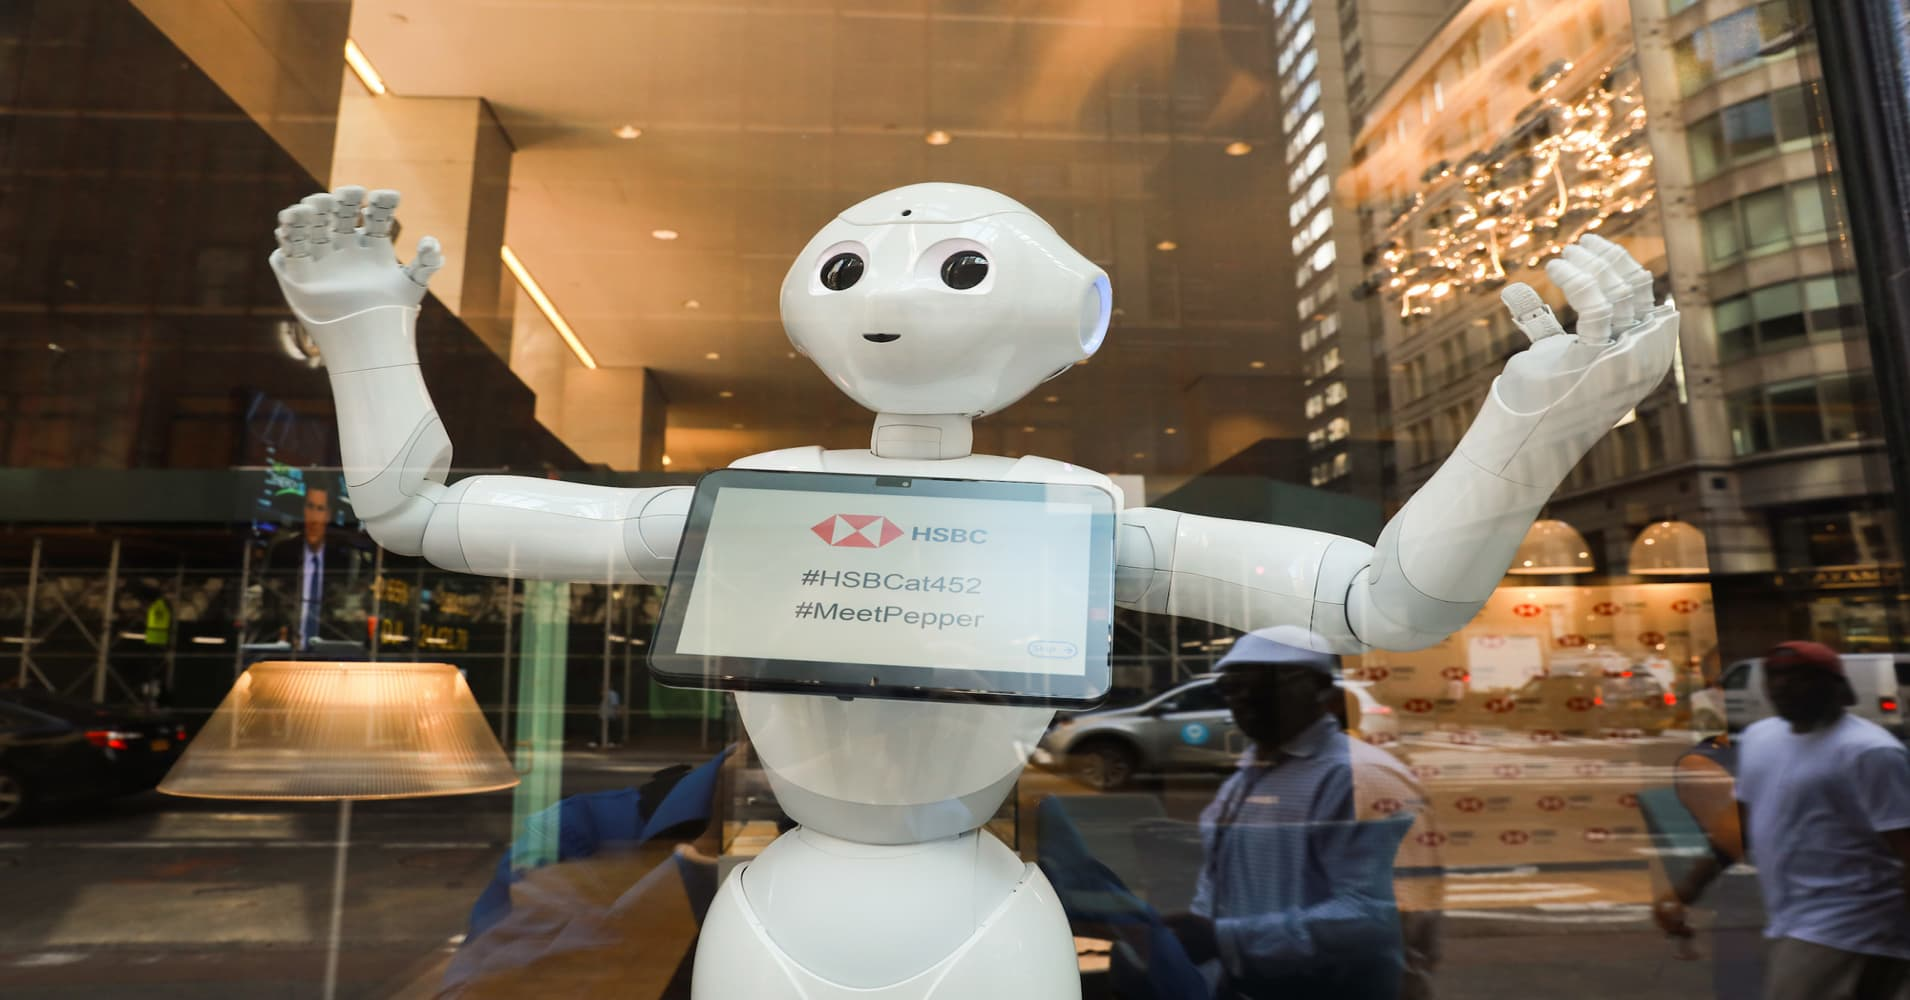 Advanced robots begin to work in retail jobs